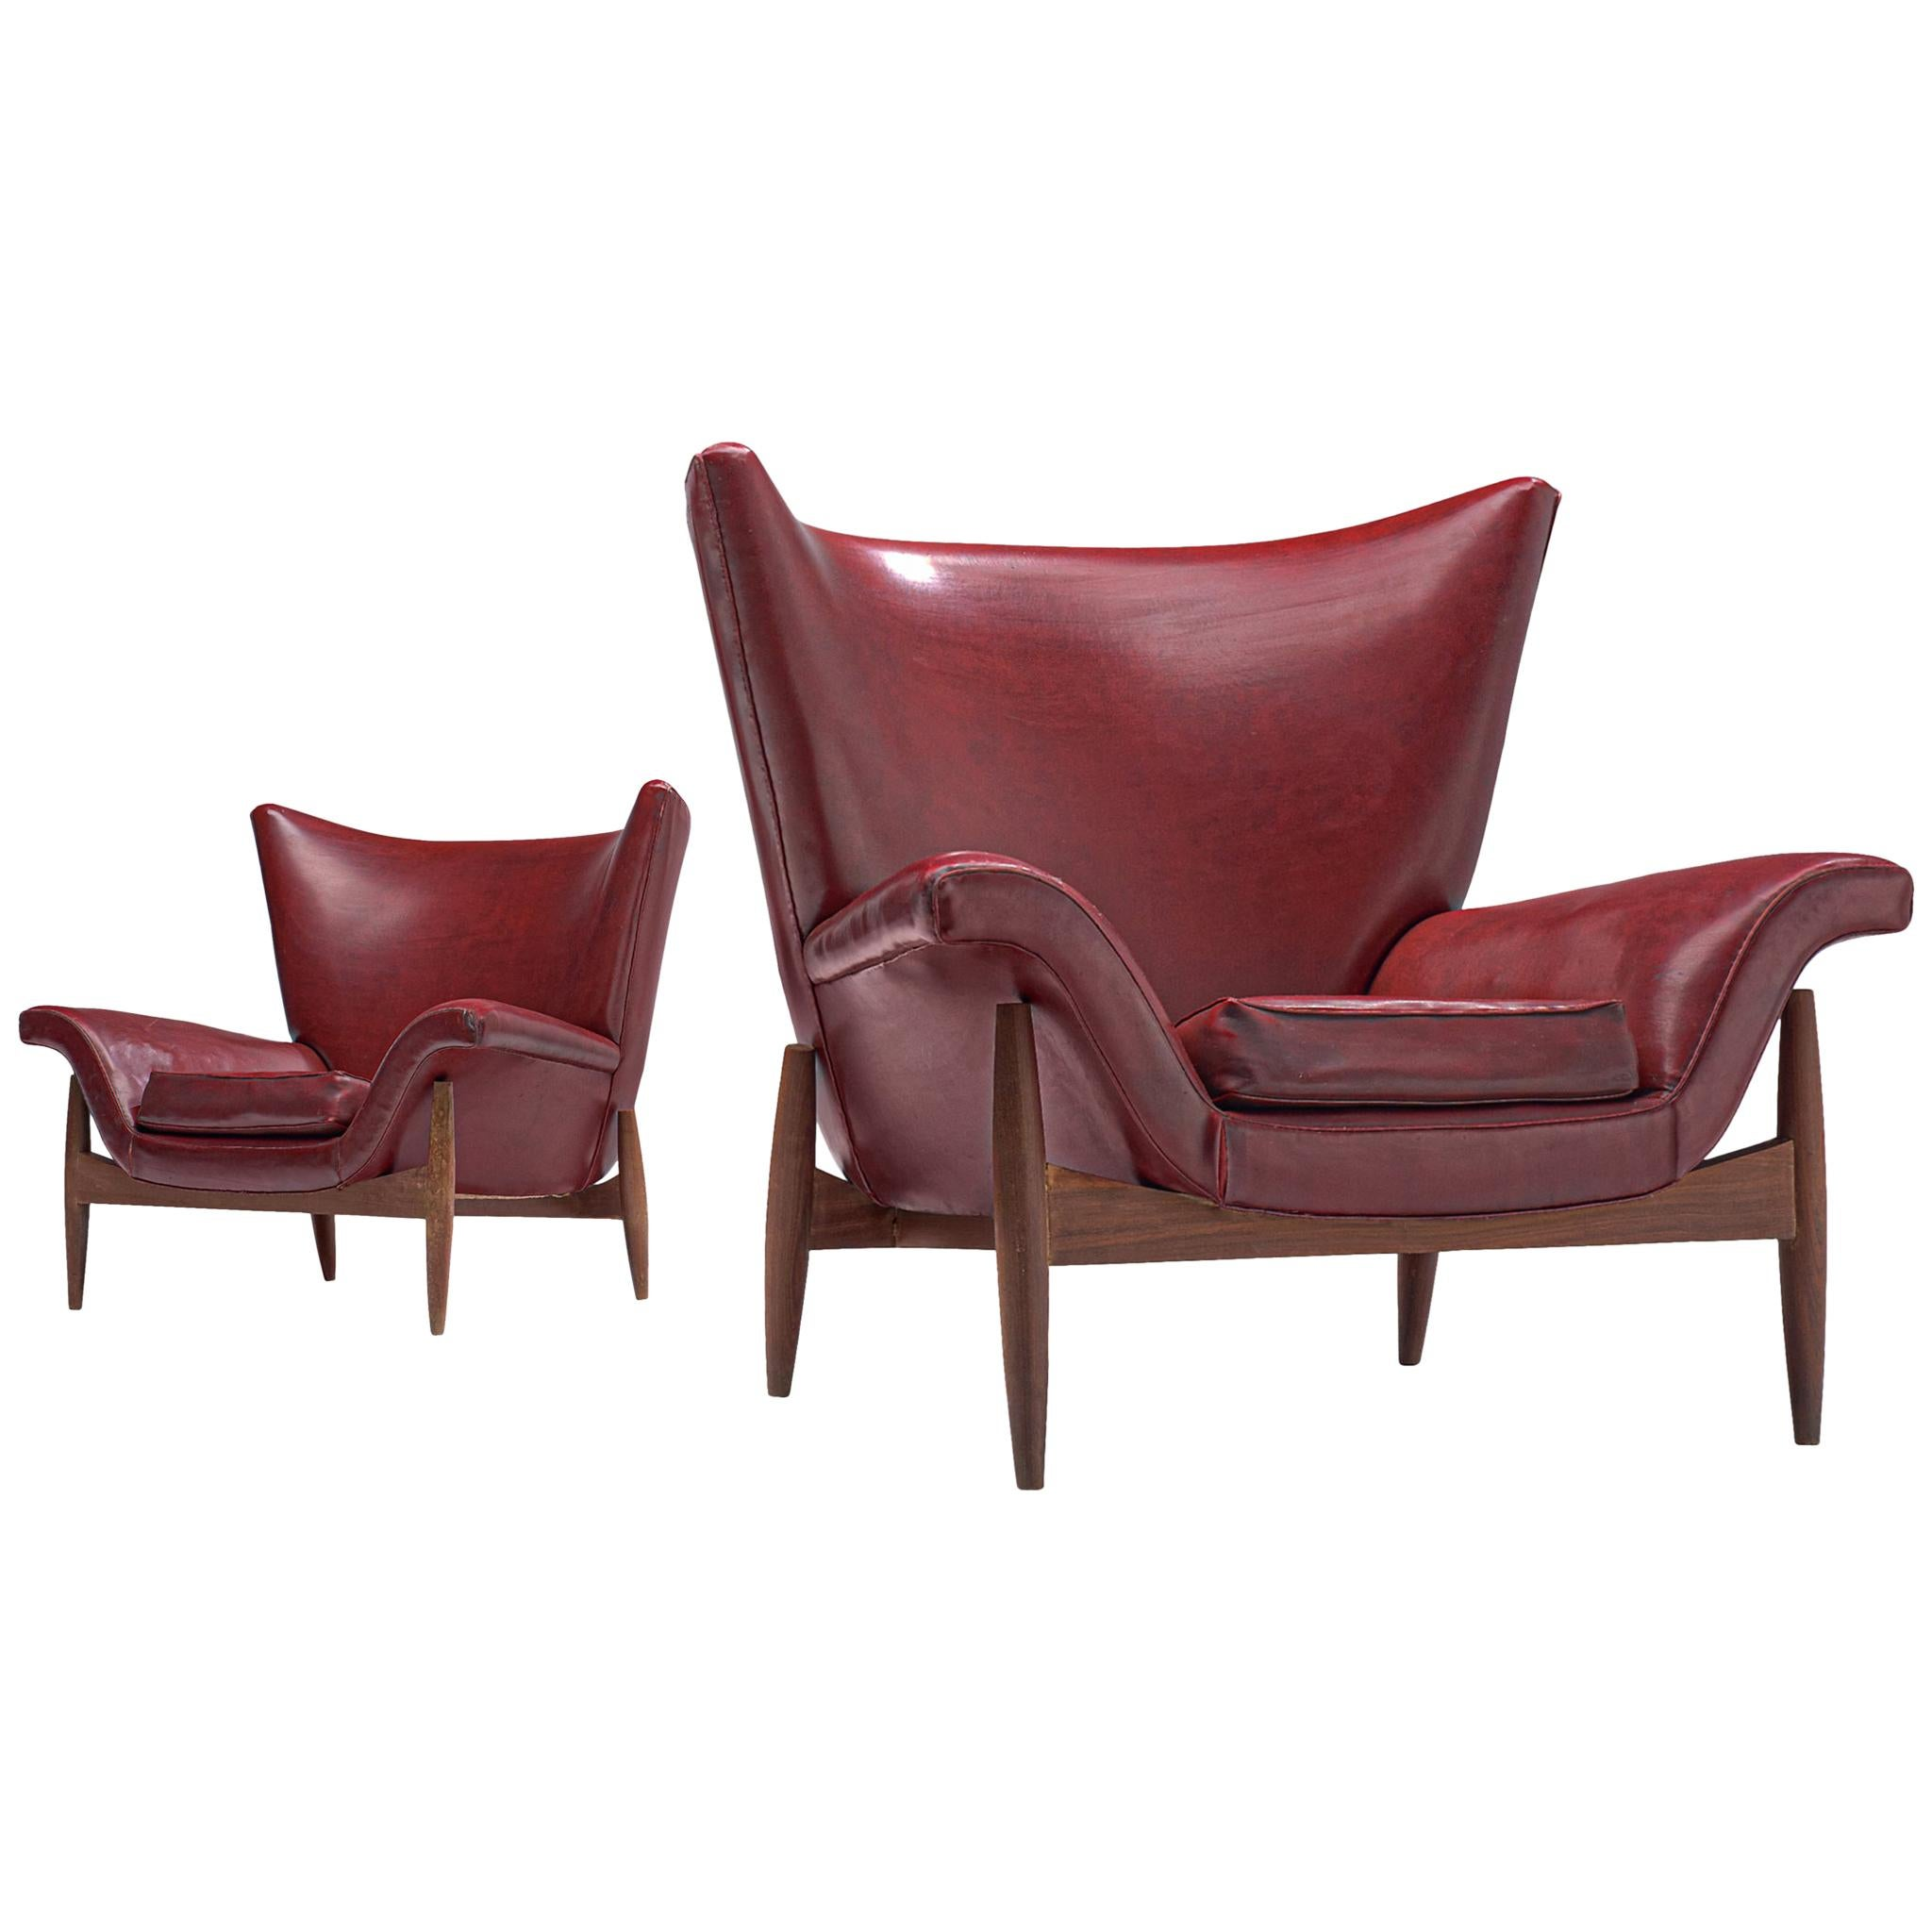 Italian Pair of Wingback Chairs in Burgundy Leatherette